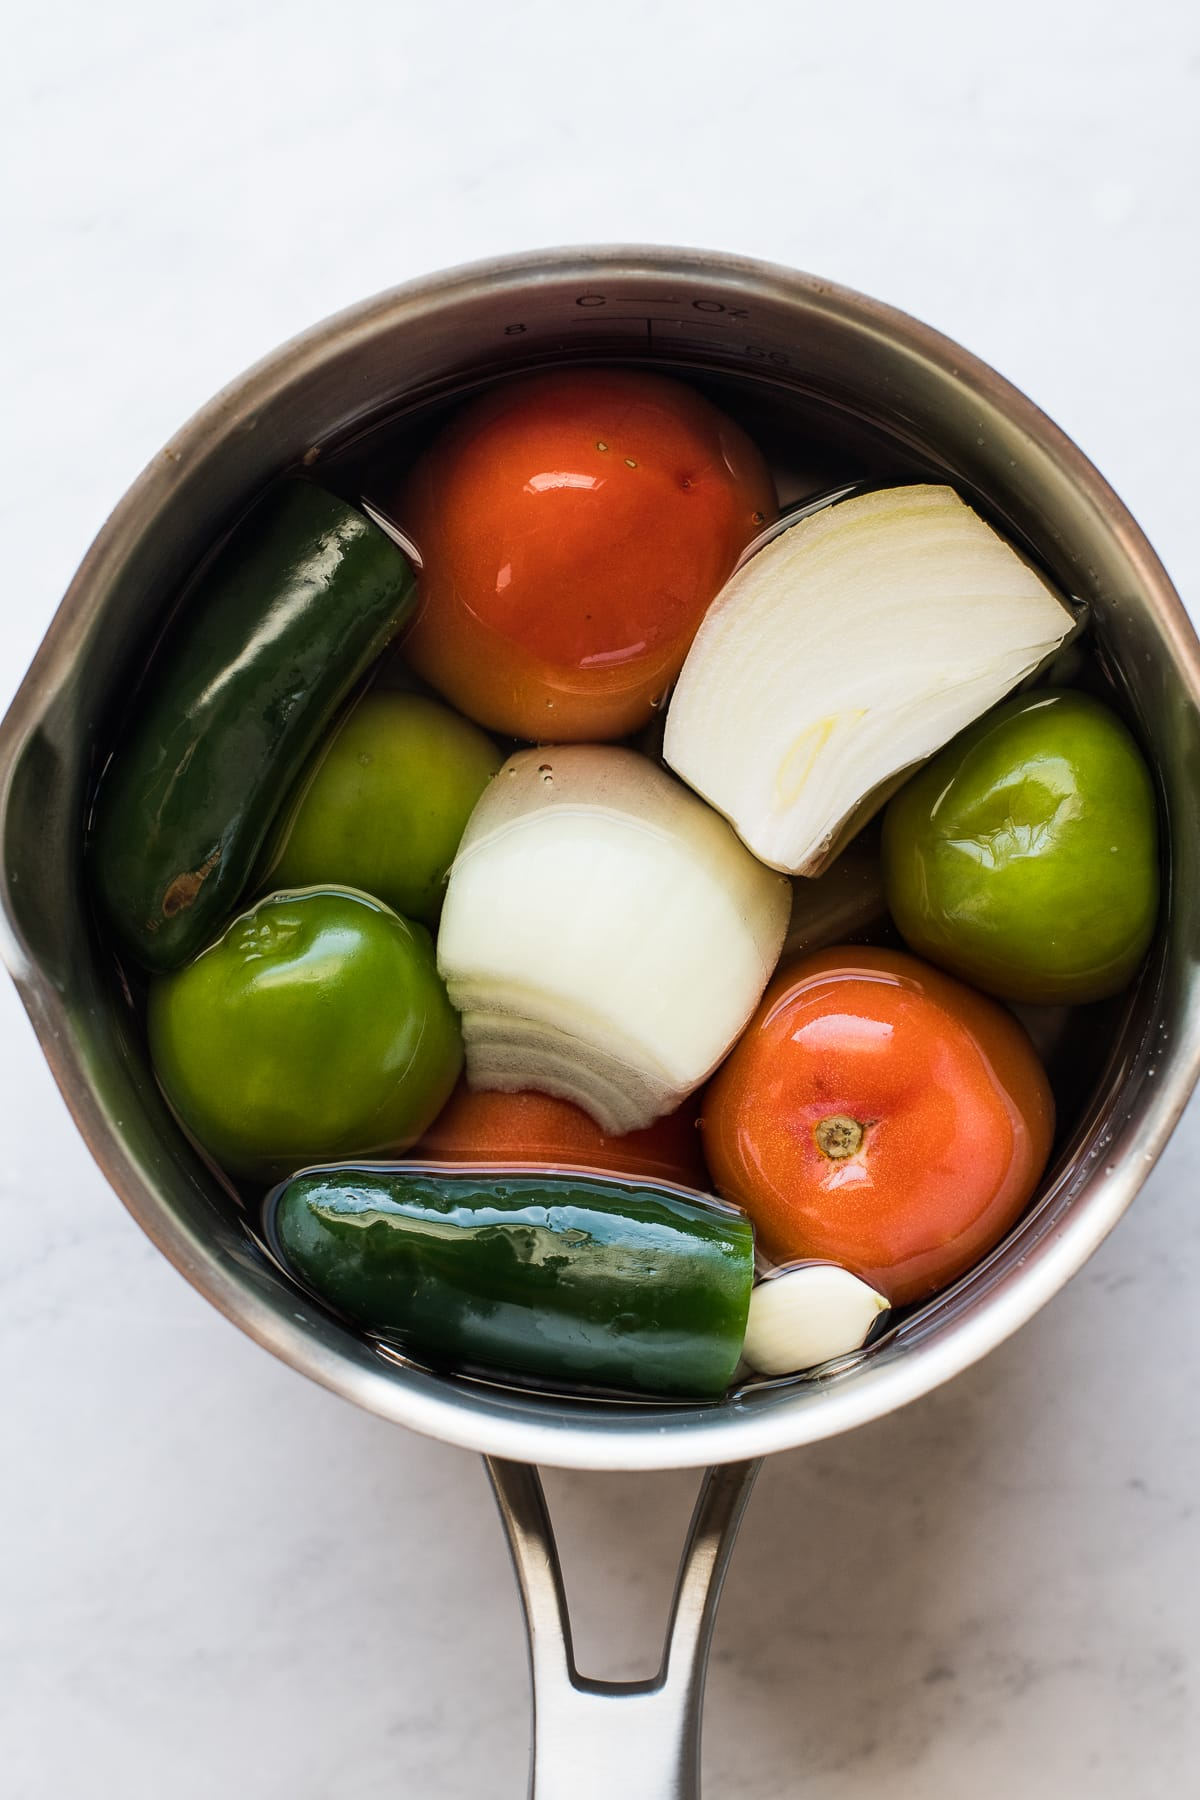 Tomatoes, onions, tomatillos, and jalapenos in a pot.